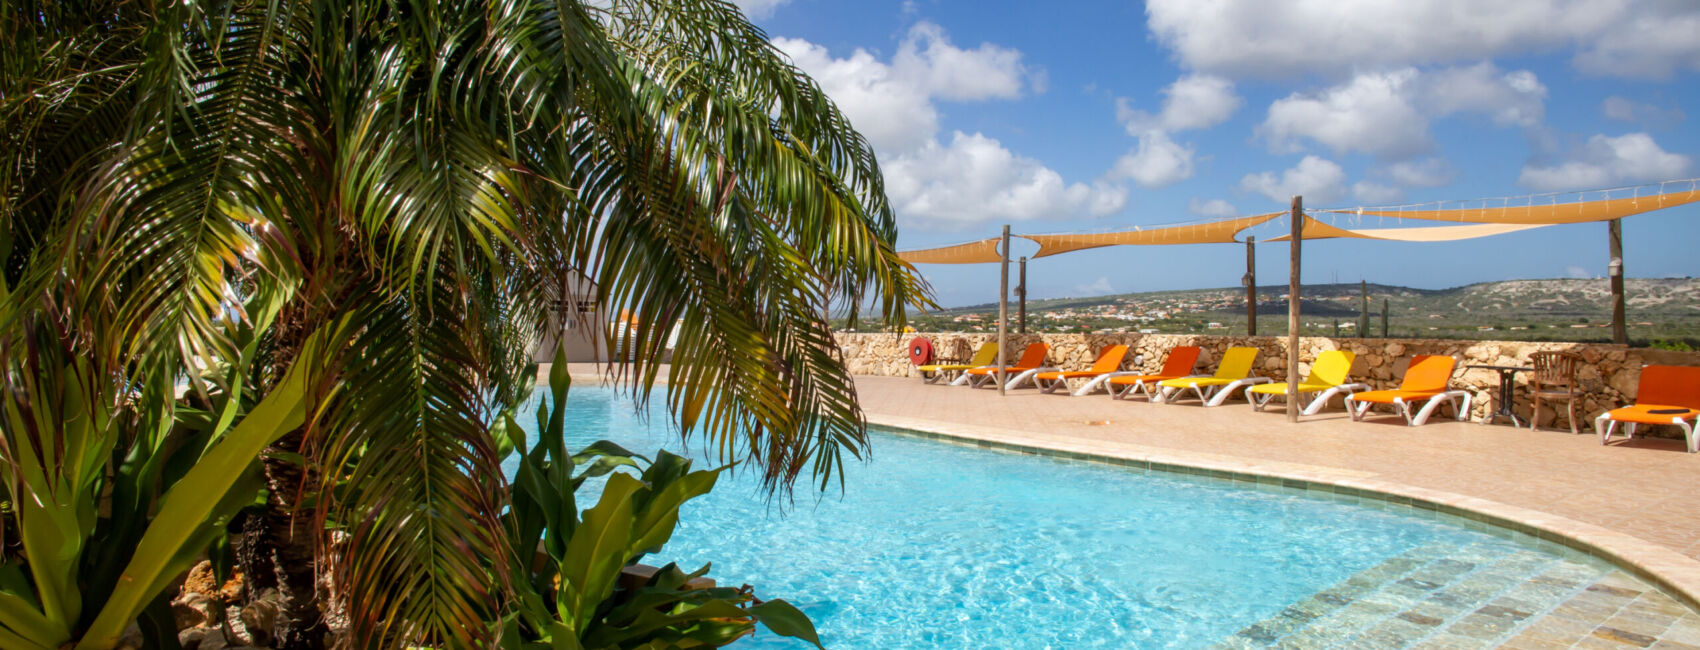 Hillside apartments Bonaire - -4464